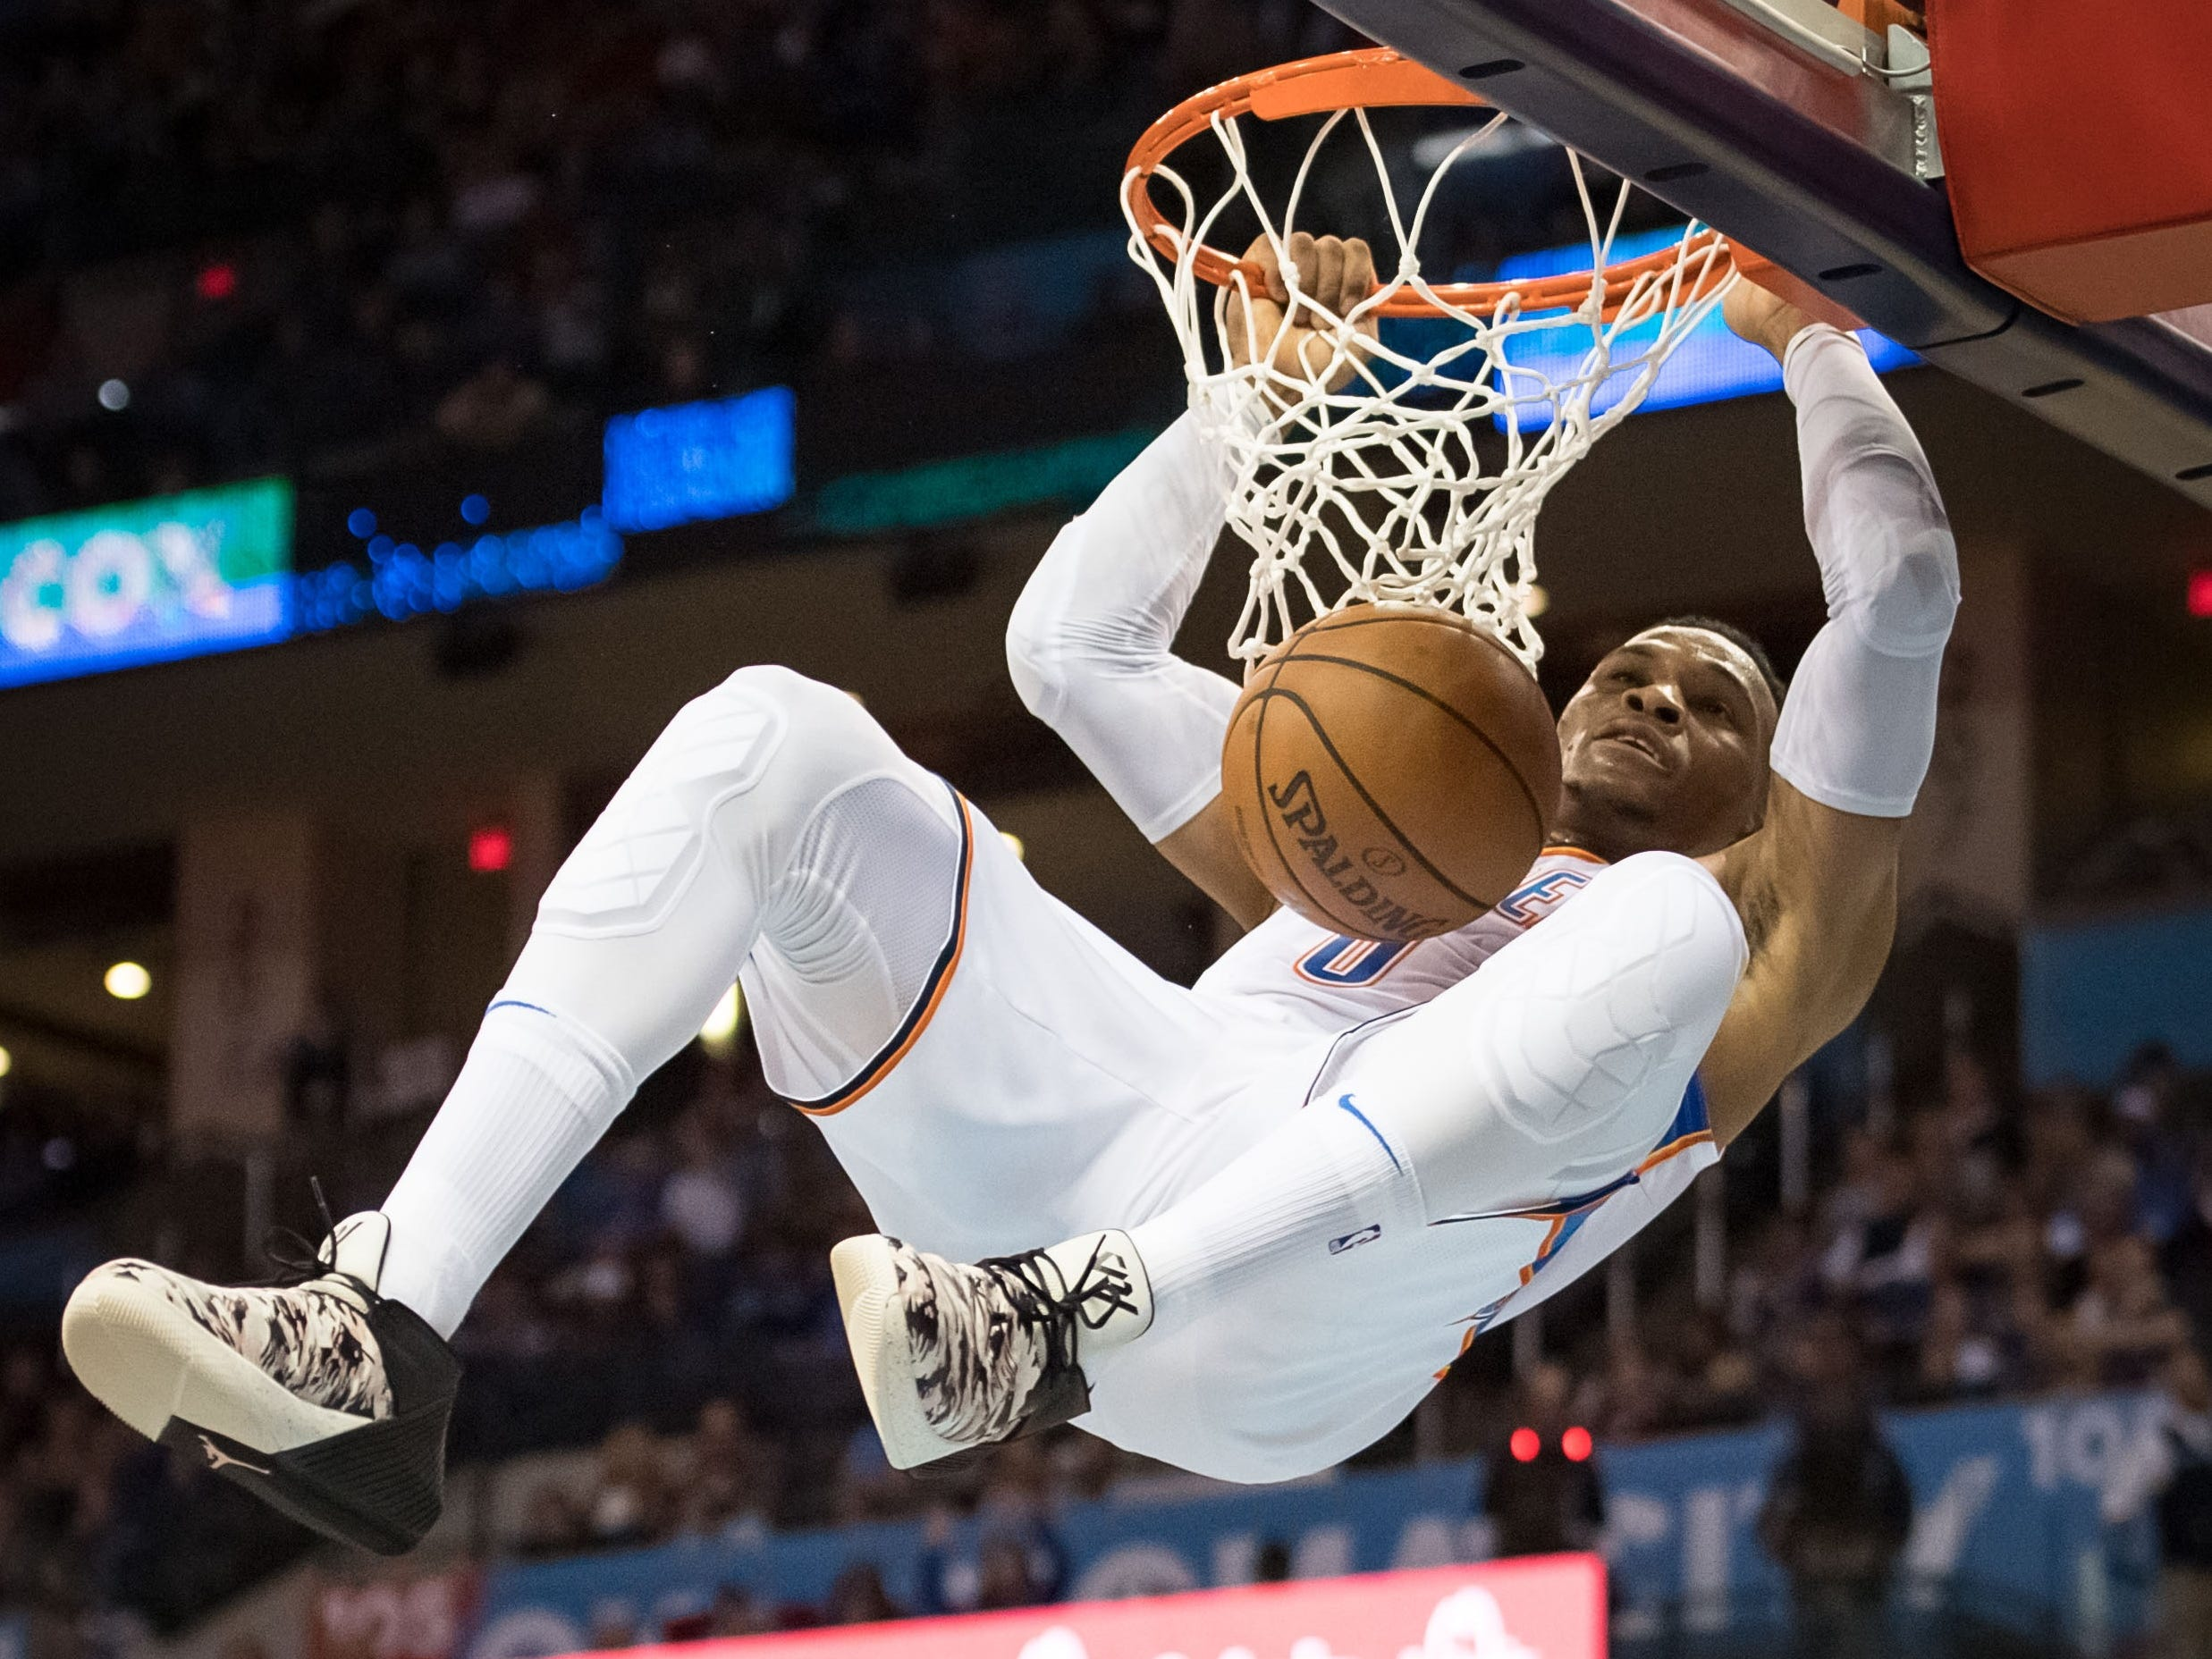 Nov. 23: Thunder guard Russell Westbrook throws down a two-handed slam with authority during the second half against the Hornets in Oklahoma City.